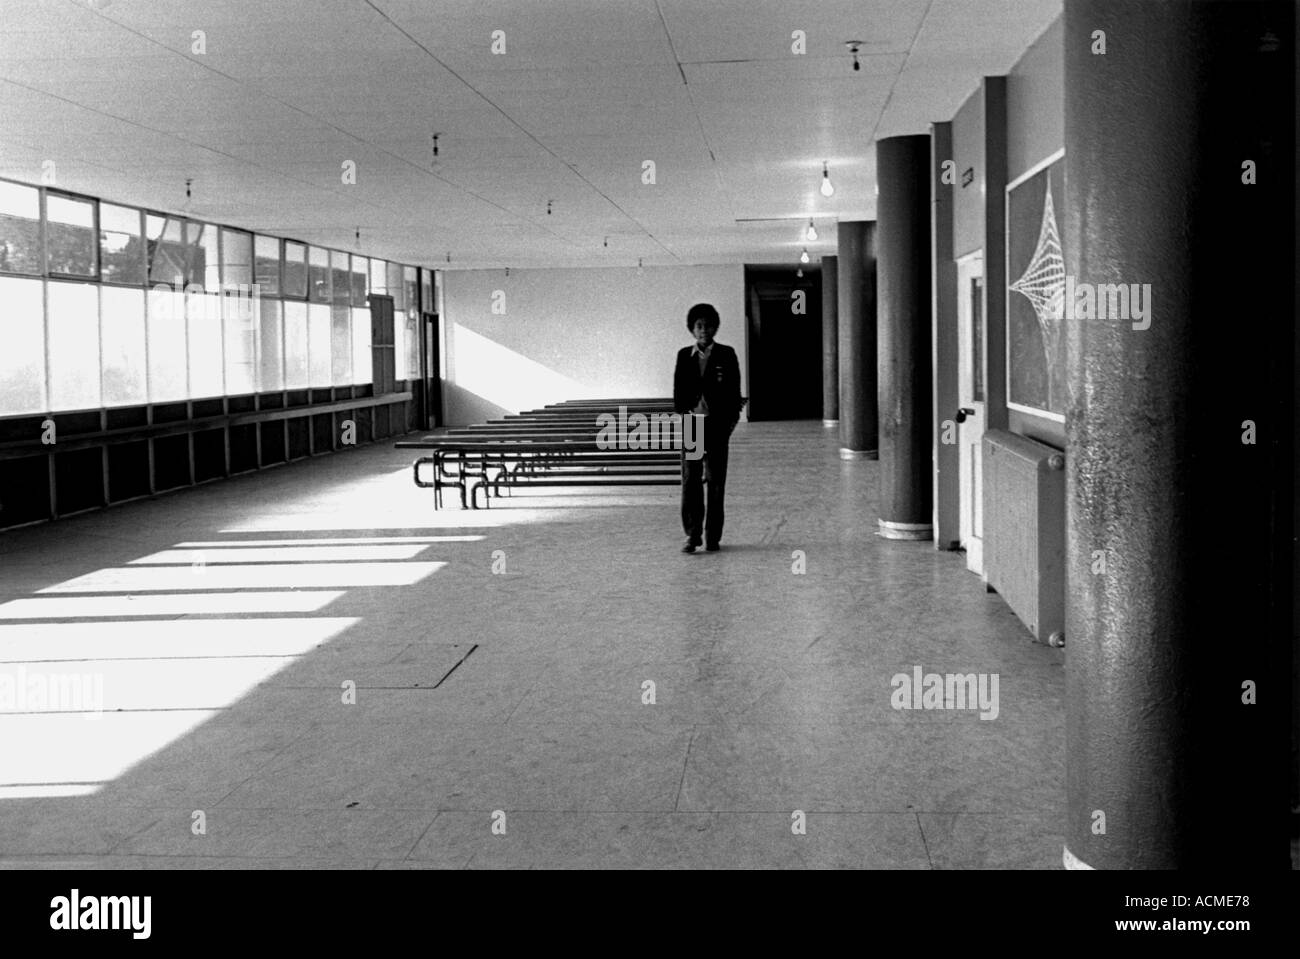 Young boy walking down school hall alone - Stock Image